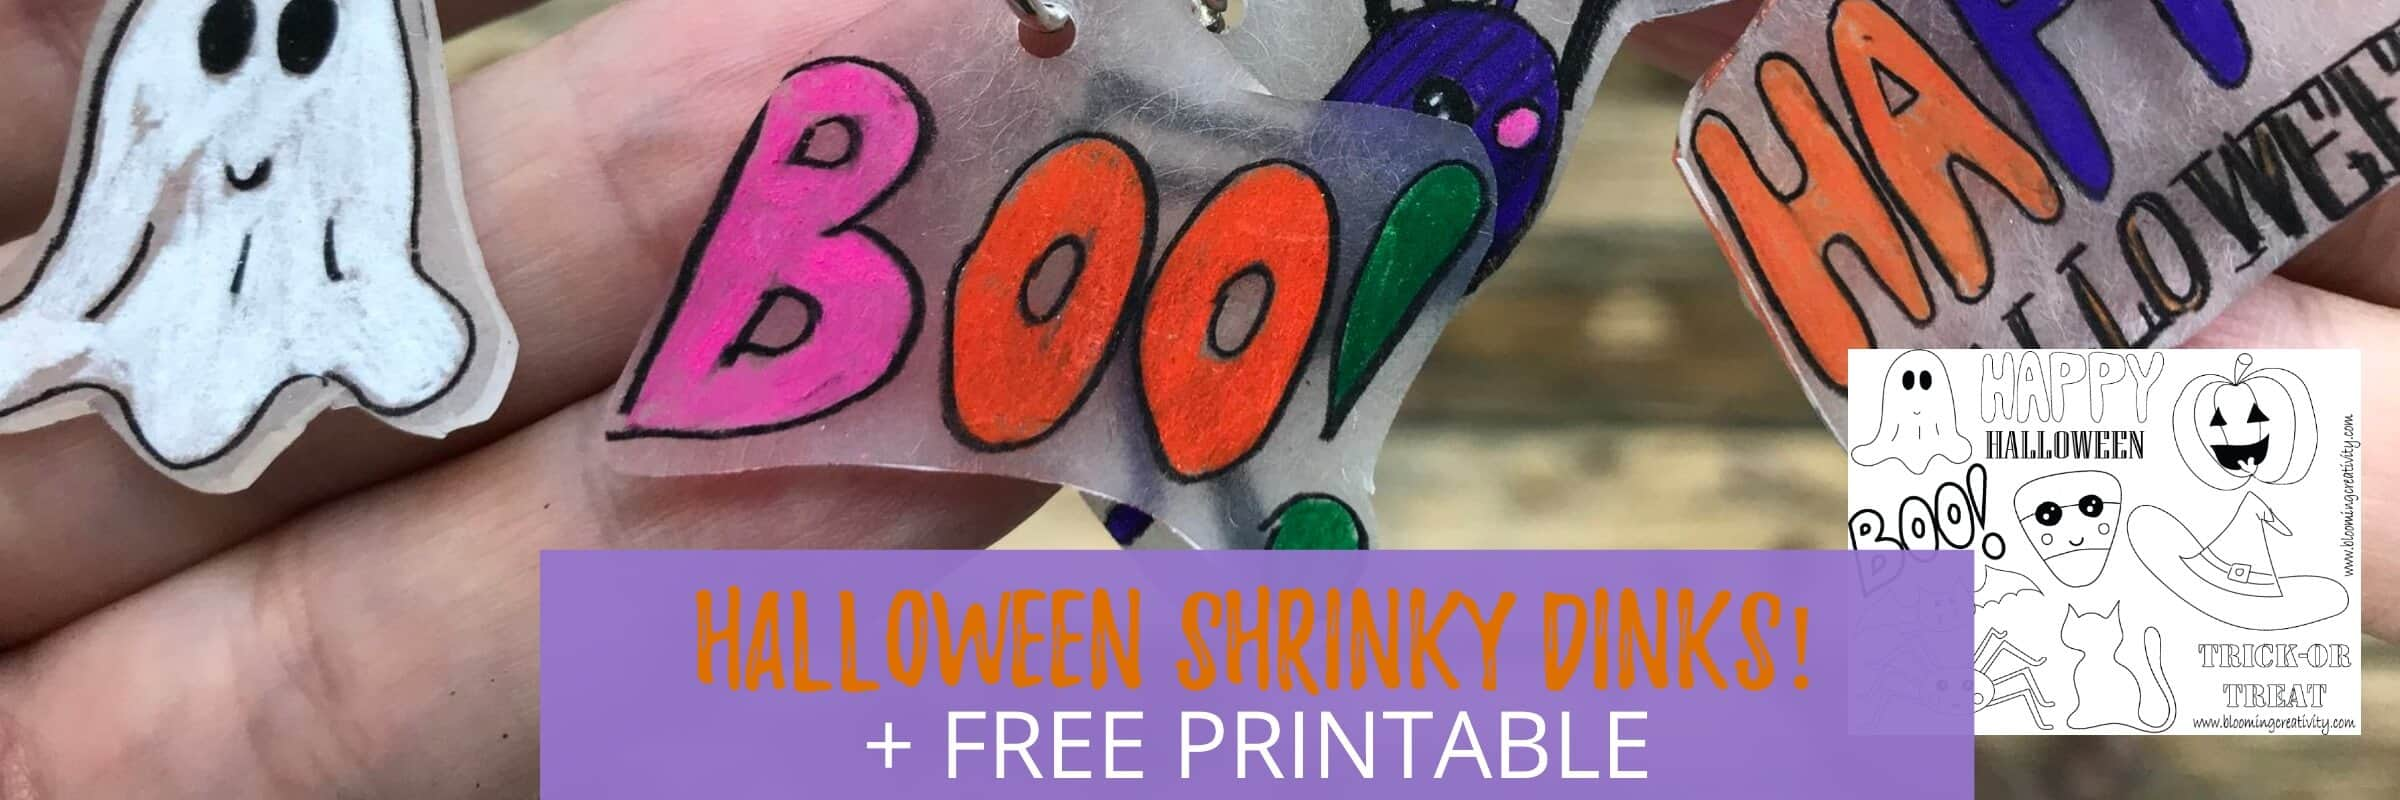 Halloween Shrinky Dinks Project and Free Printable